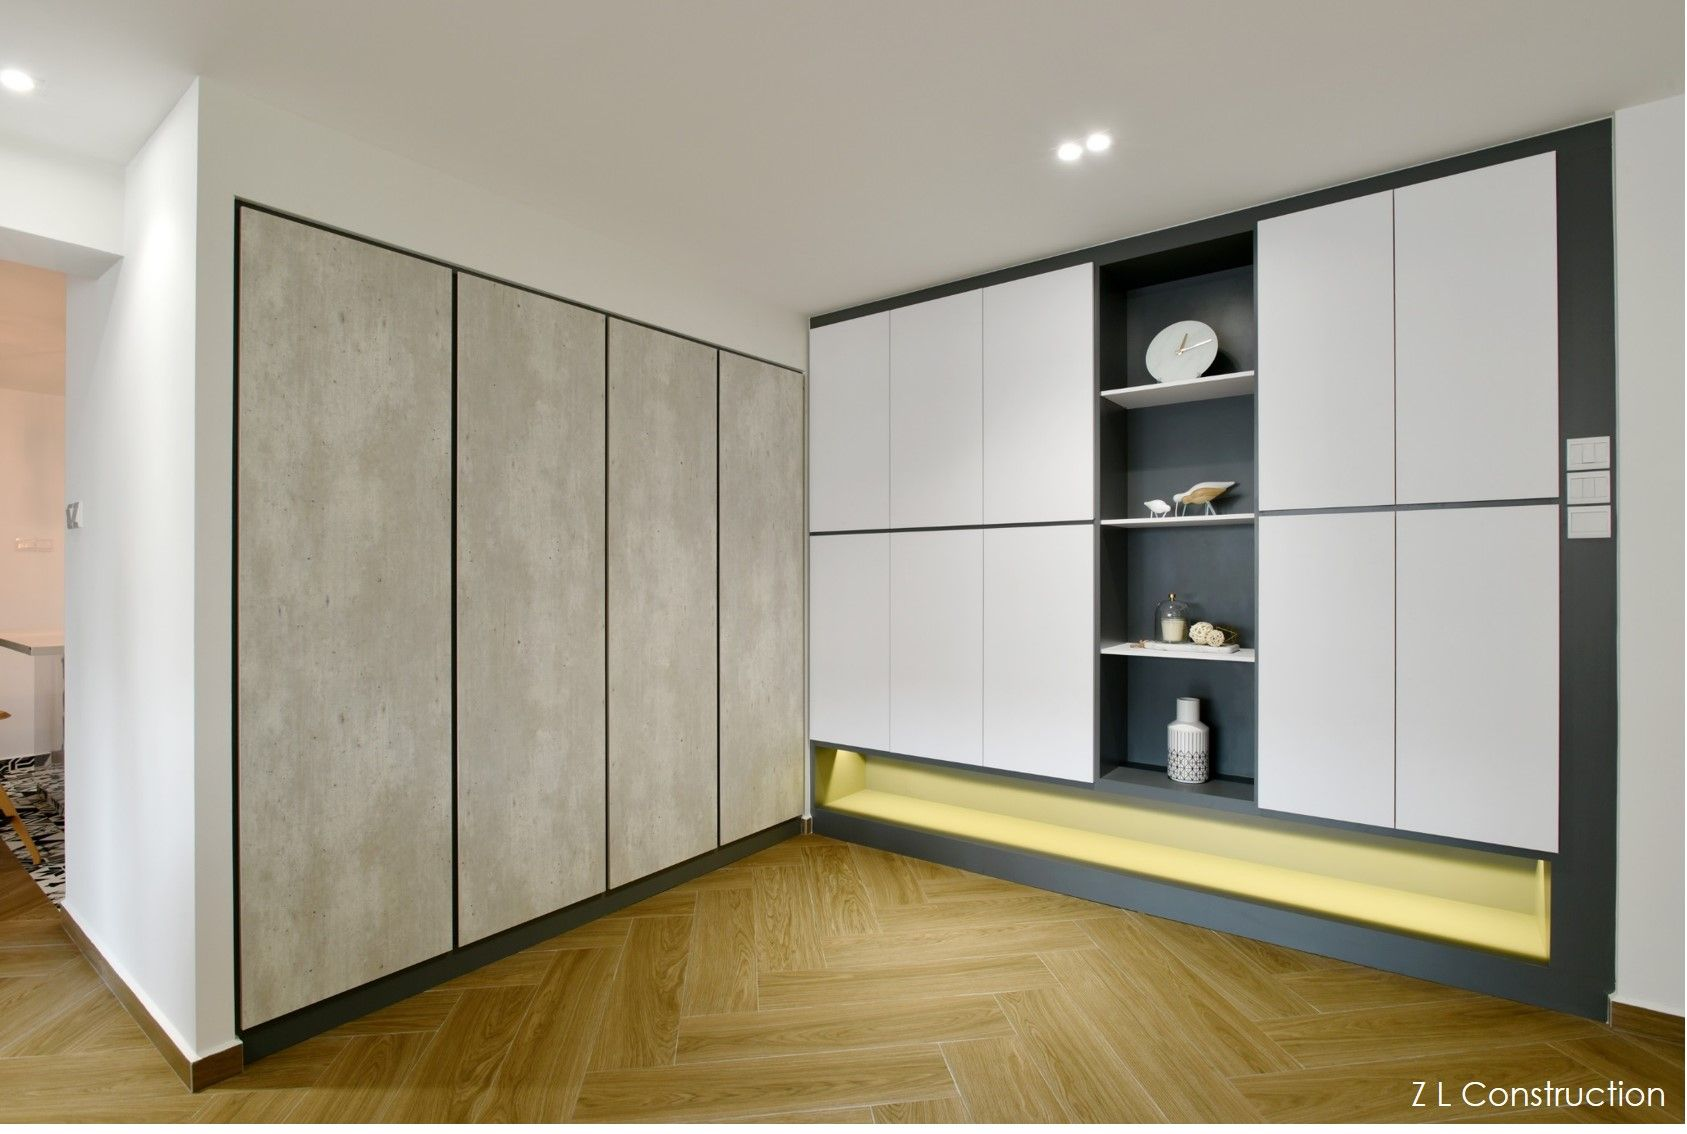 Zlc Singapore Streamlined Storage Structures Shoe Cabinet Doubling Up As A Feature Display With A Column Of Perfectl Shoe Cabinet Storage Cabinet Storage